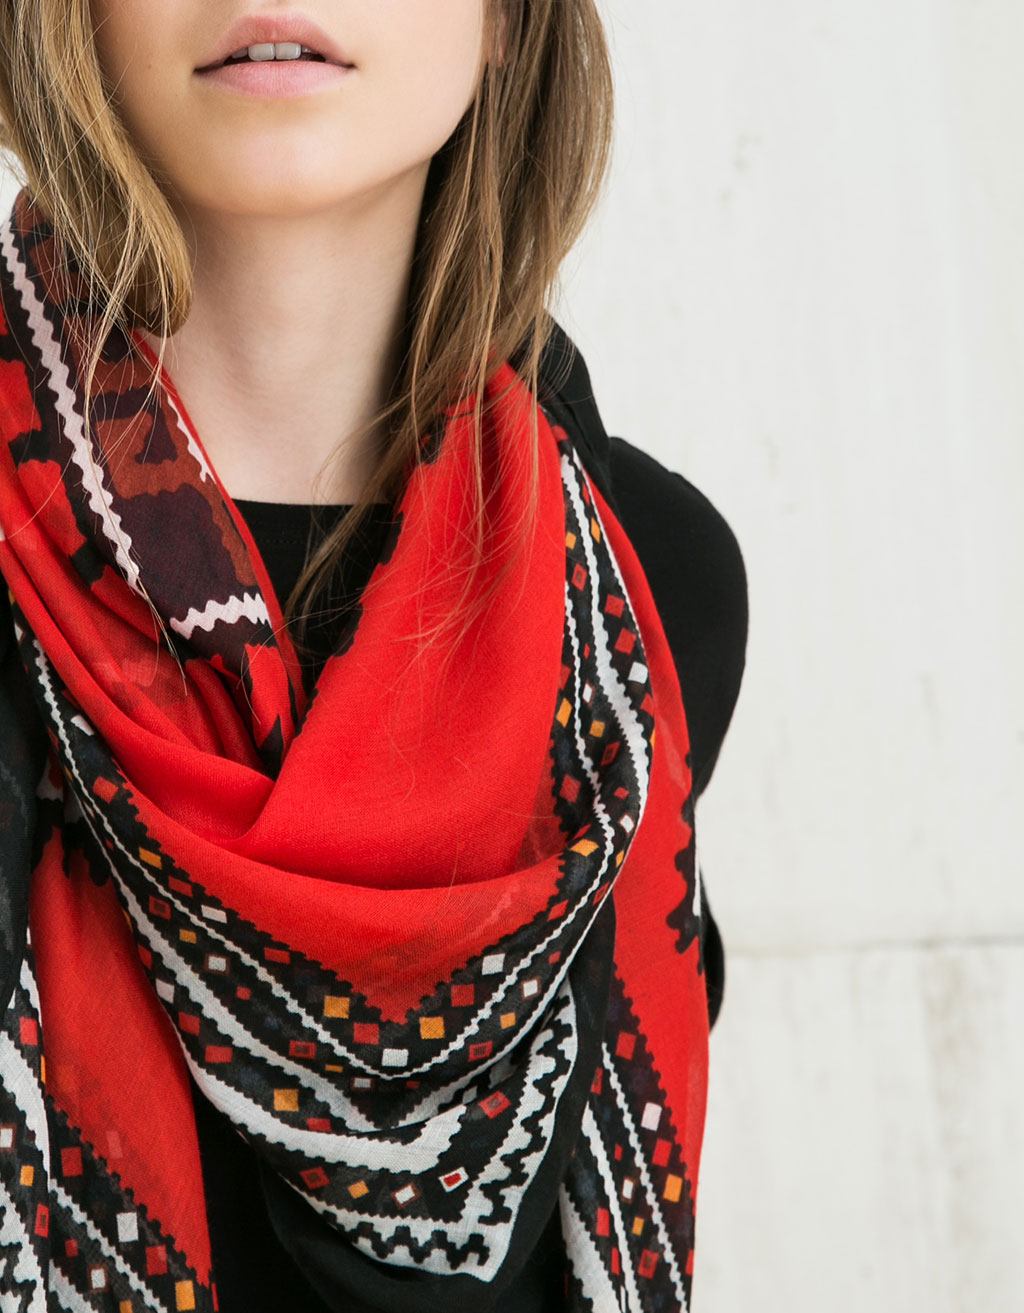 Red ikat scarf